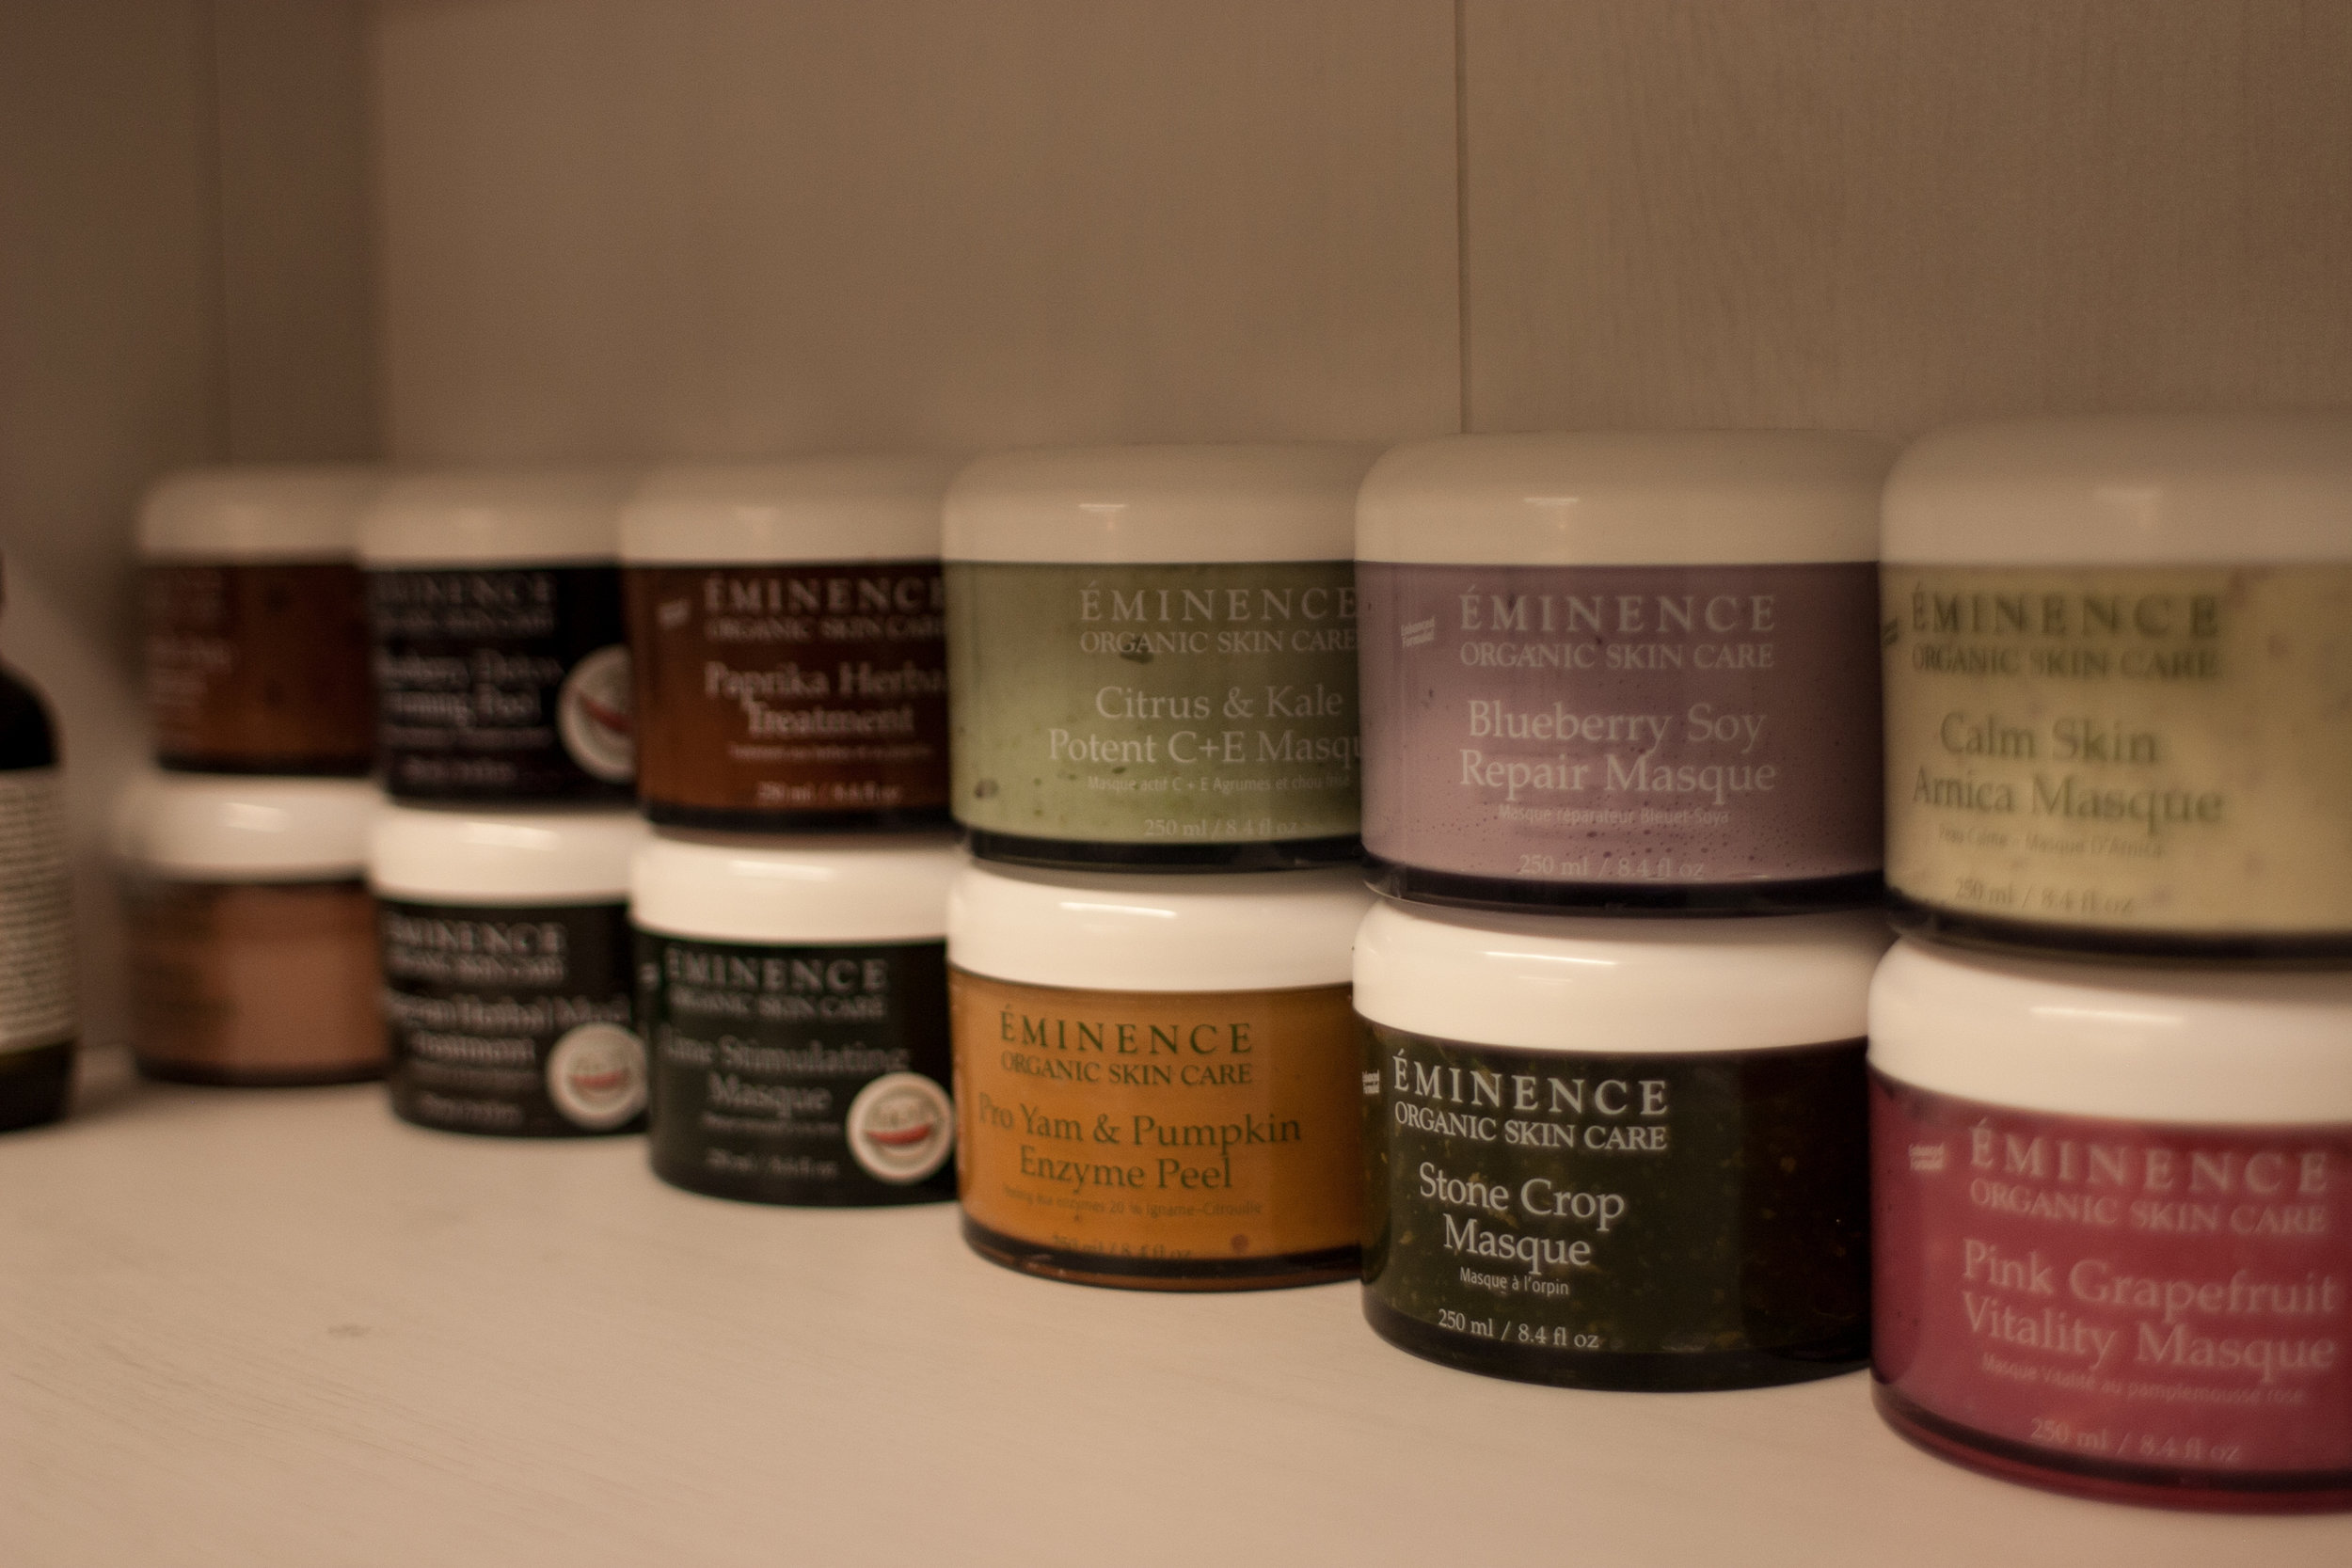 A few of the many masque treatments we carry for all skin types